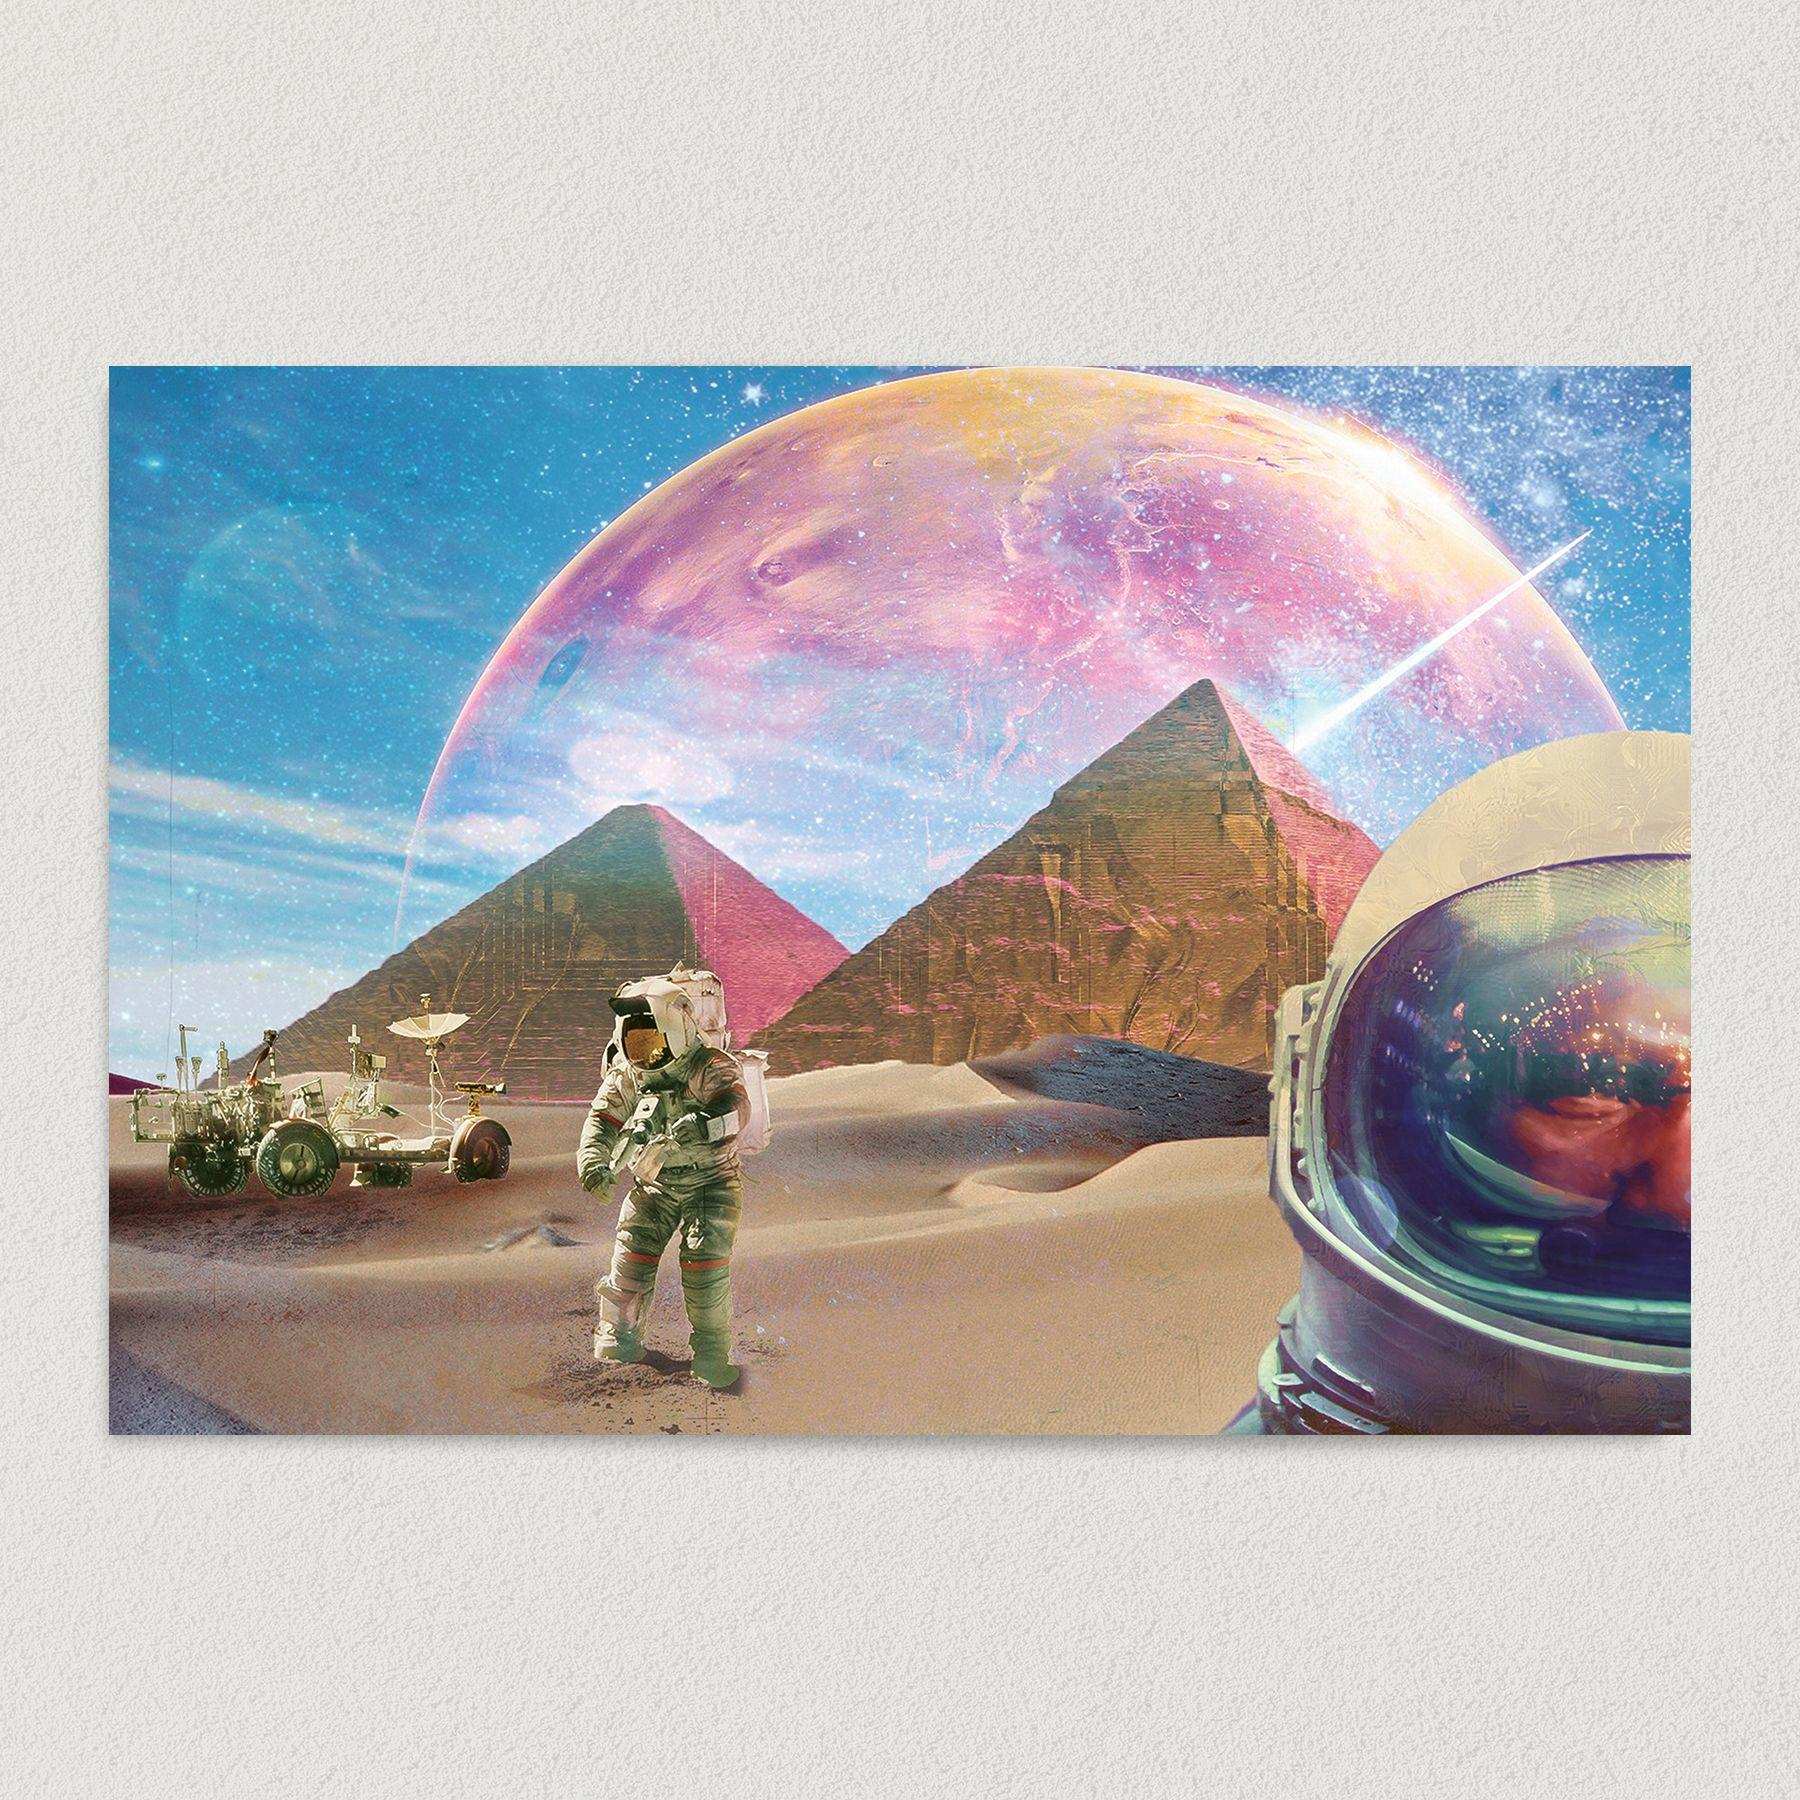 Exploring Other Dimensions Space Men Art Print Poster S1010